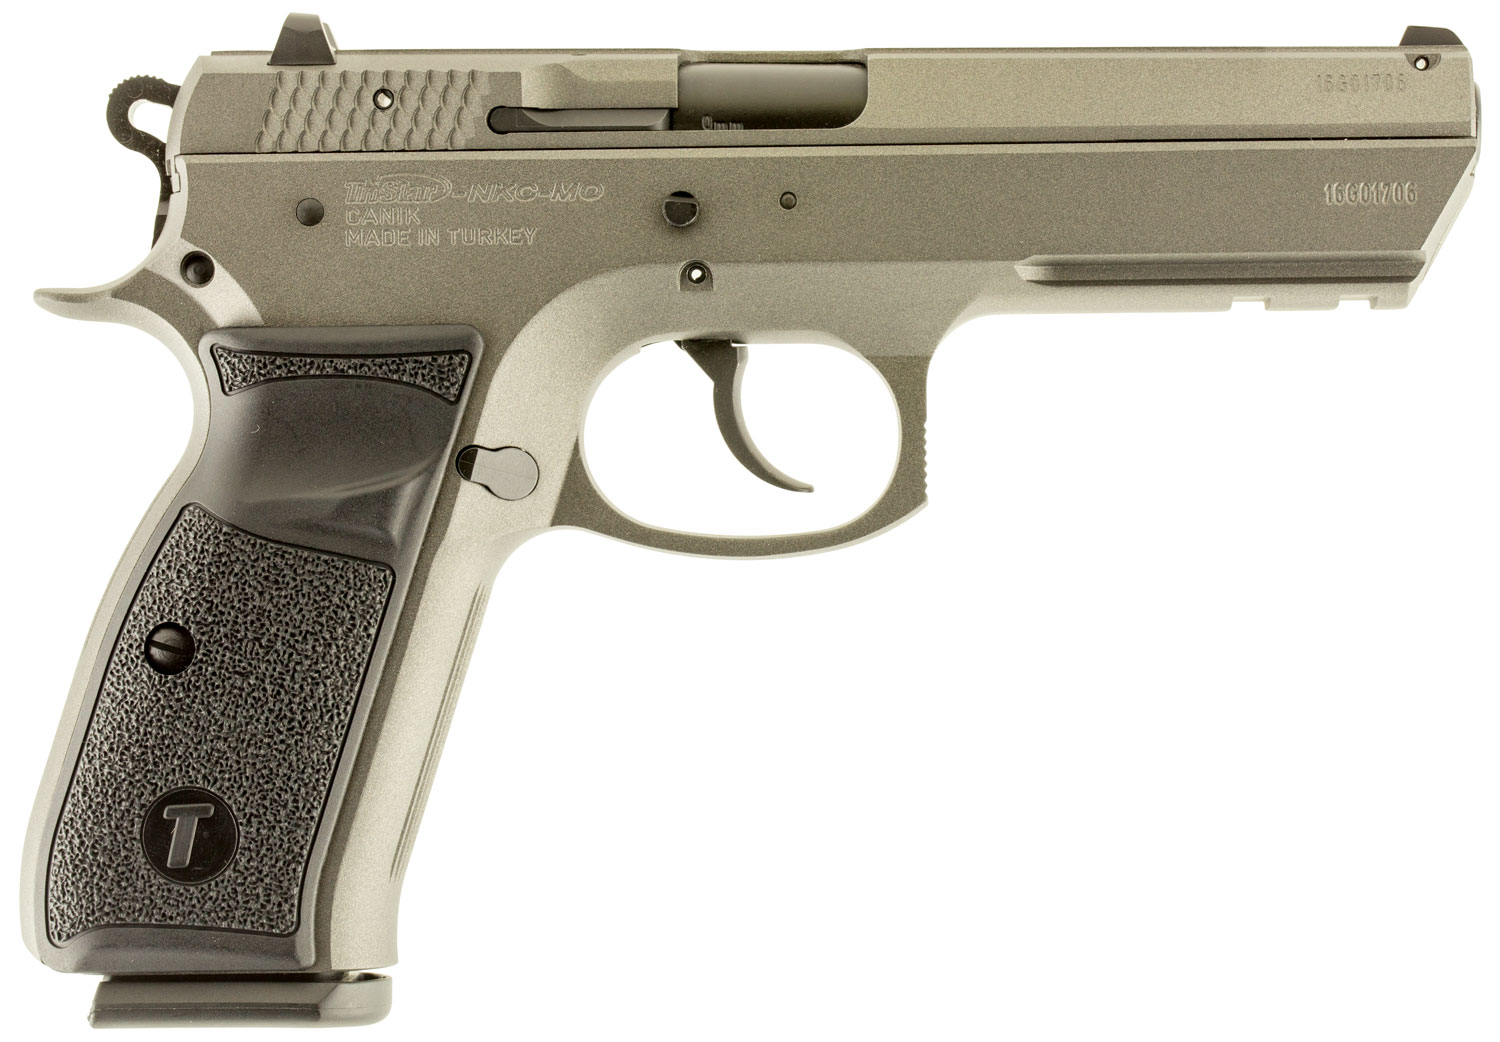 TriStar 85092 T-120 Aluminum Single/Double 9mm Luger 4.7